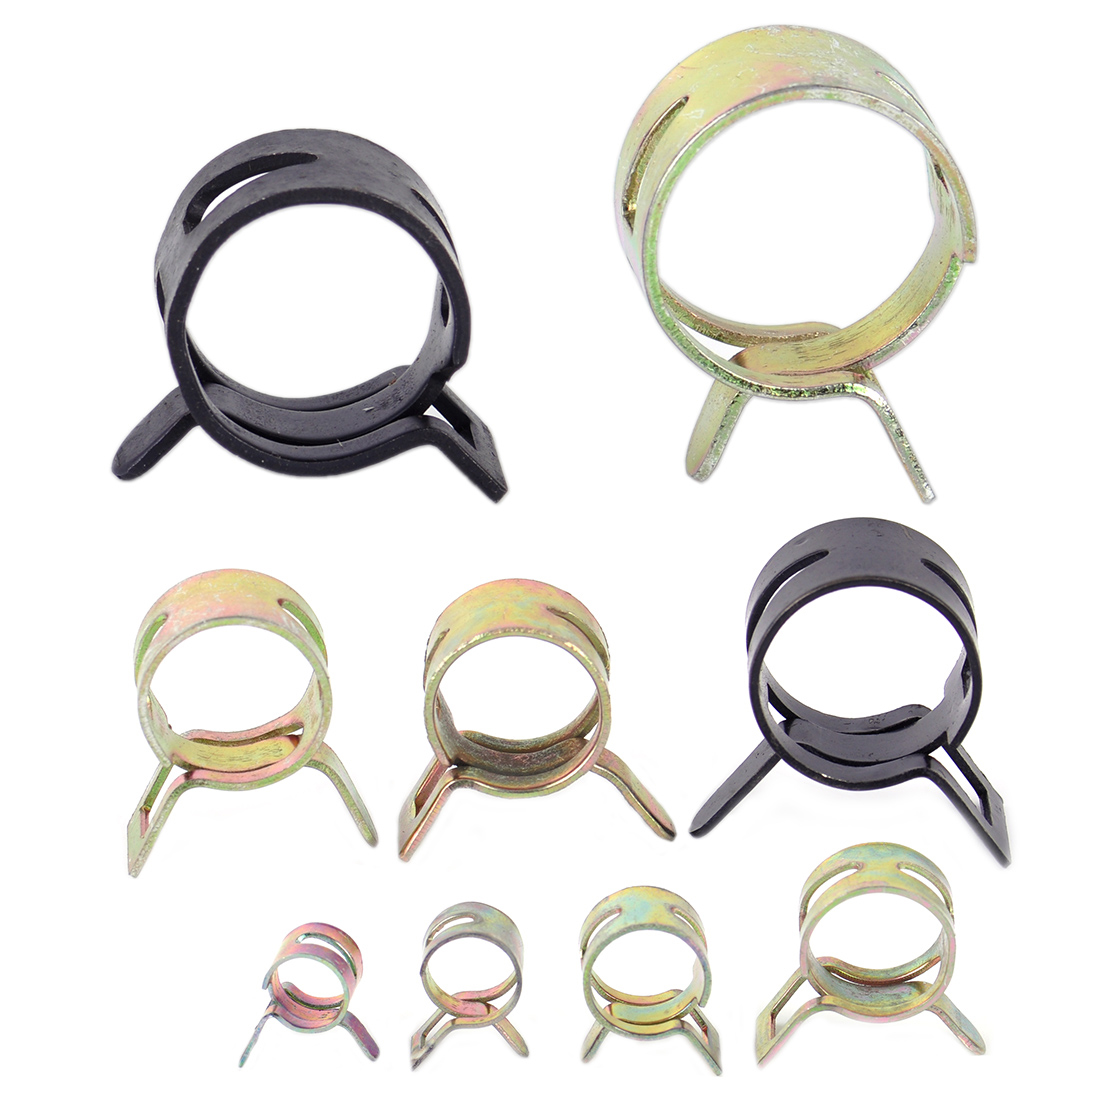 DWCX 90Pcs 8/10/12/14/15/16/18/20/22mm Spring Clip Vacuum Silicone Hose Clamp Fuel Water Pipe Air Tube Hose Clamp Fastener